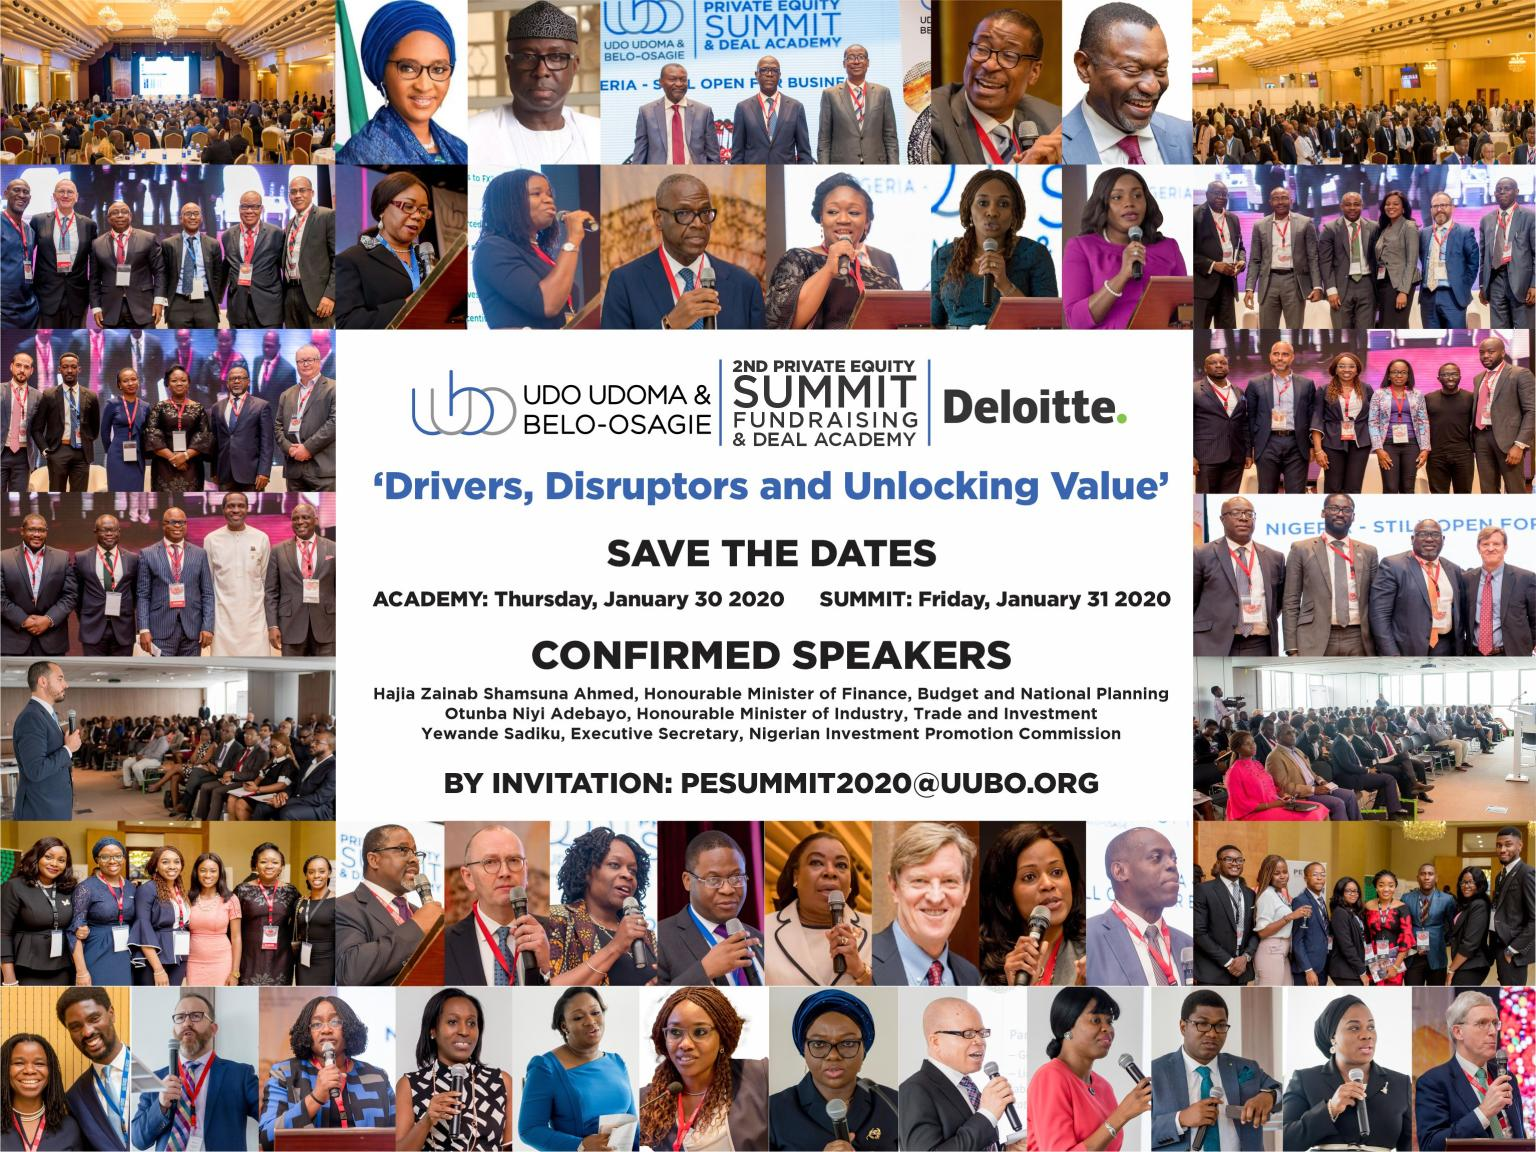 UUBO PRIVATE EQUITY SUMMIT: 'DRIVERS, DISRUPTORS AND UNLOCKING VALUE'